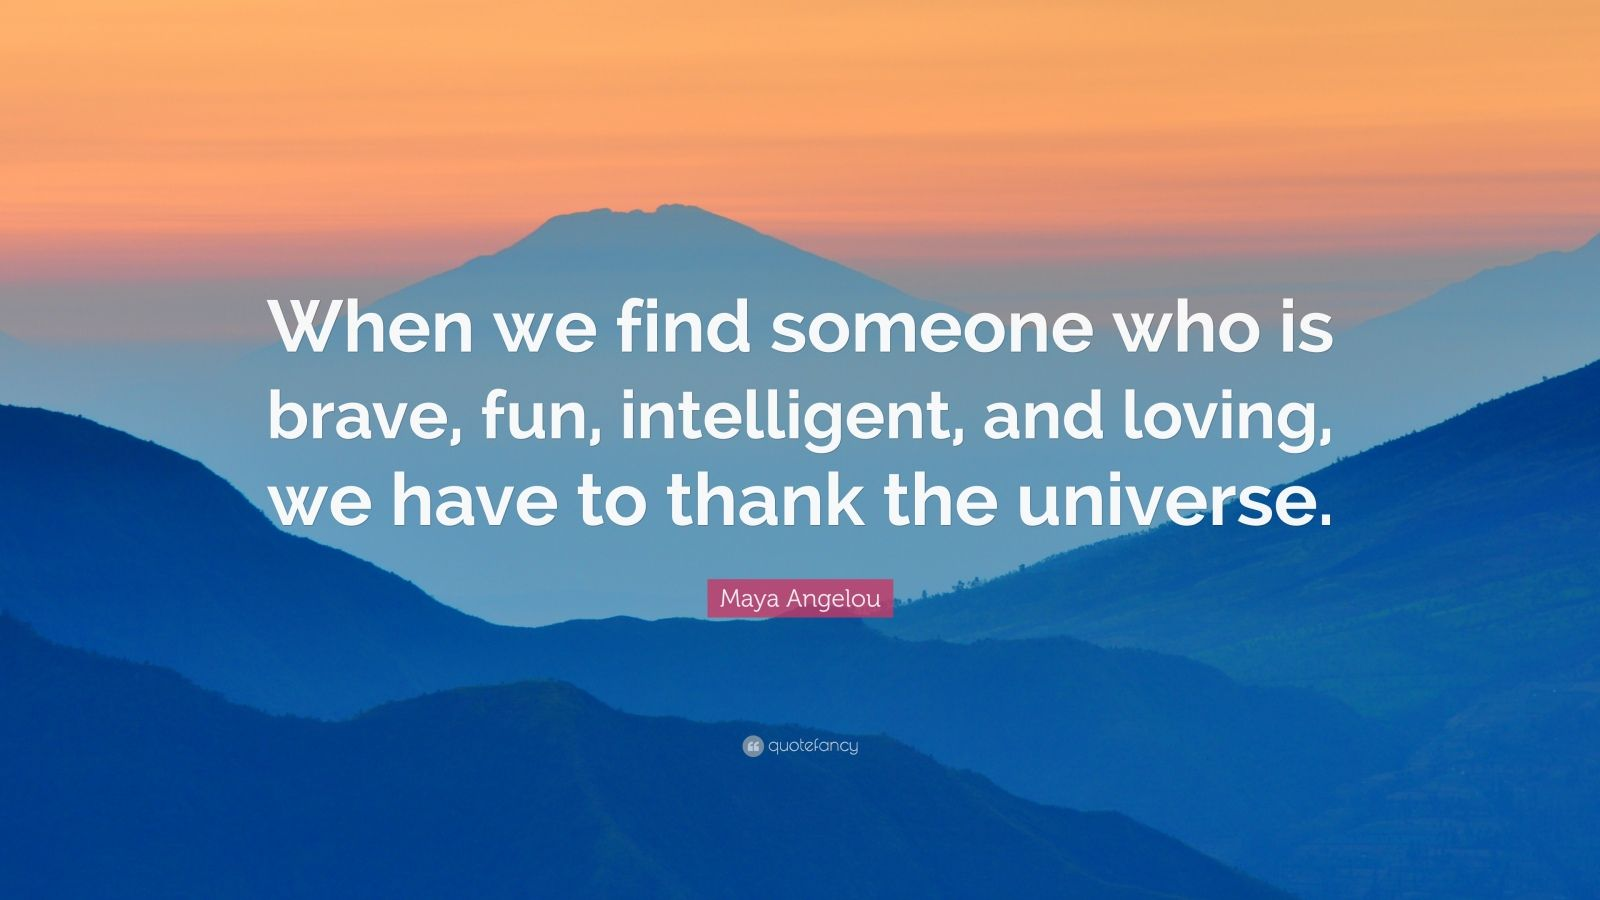 """Maya Angelou Quote: """"When we find someone who is brave, fun, intelligent, and loving, we have to thank the universe."""""""